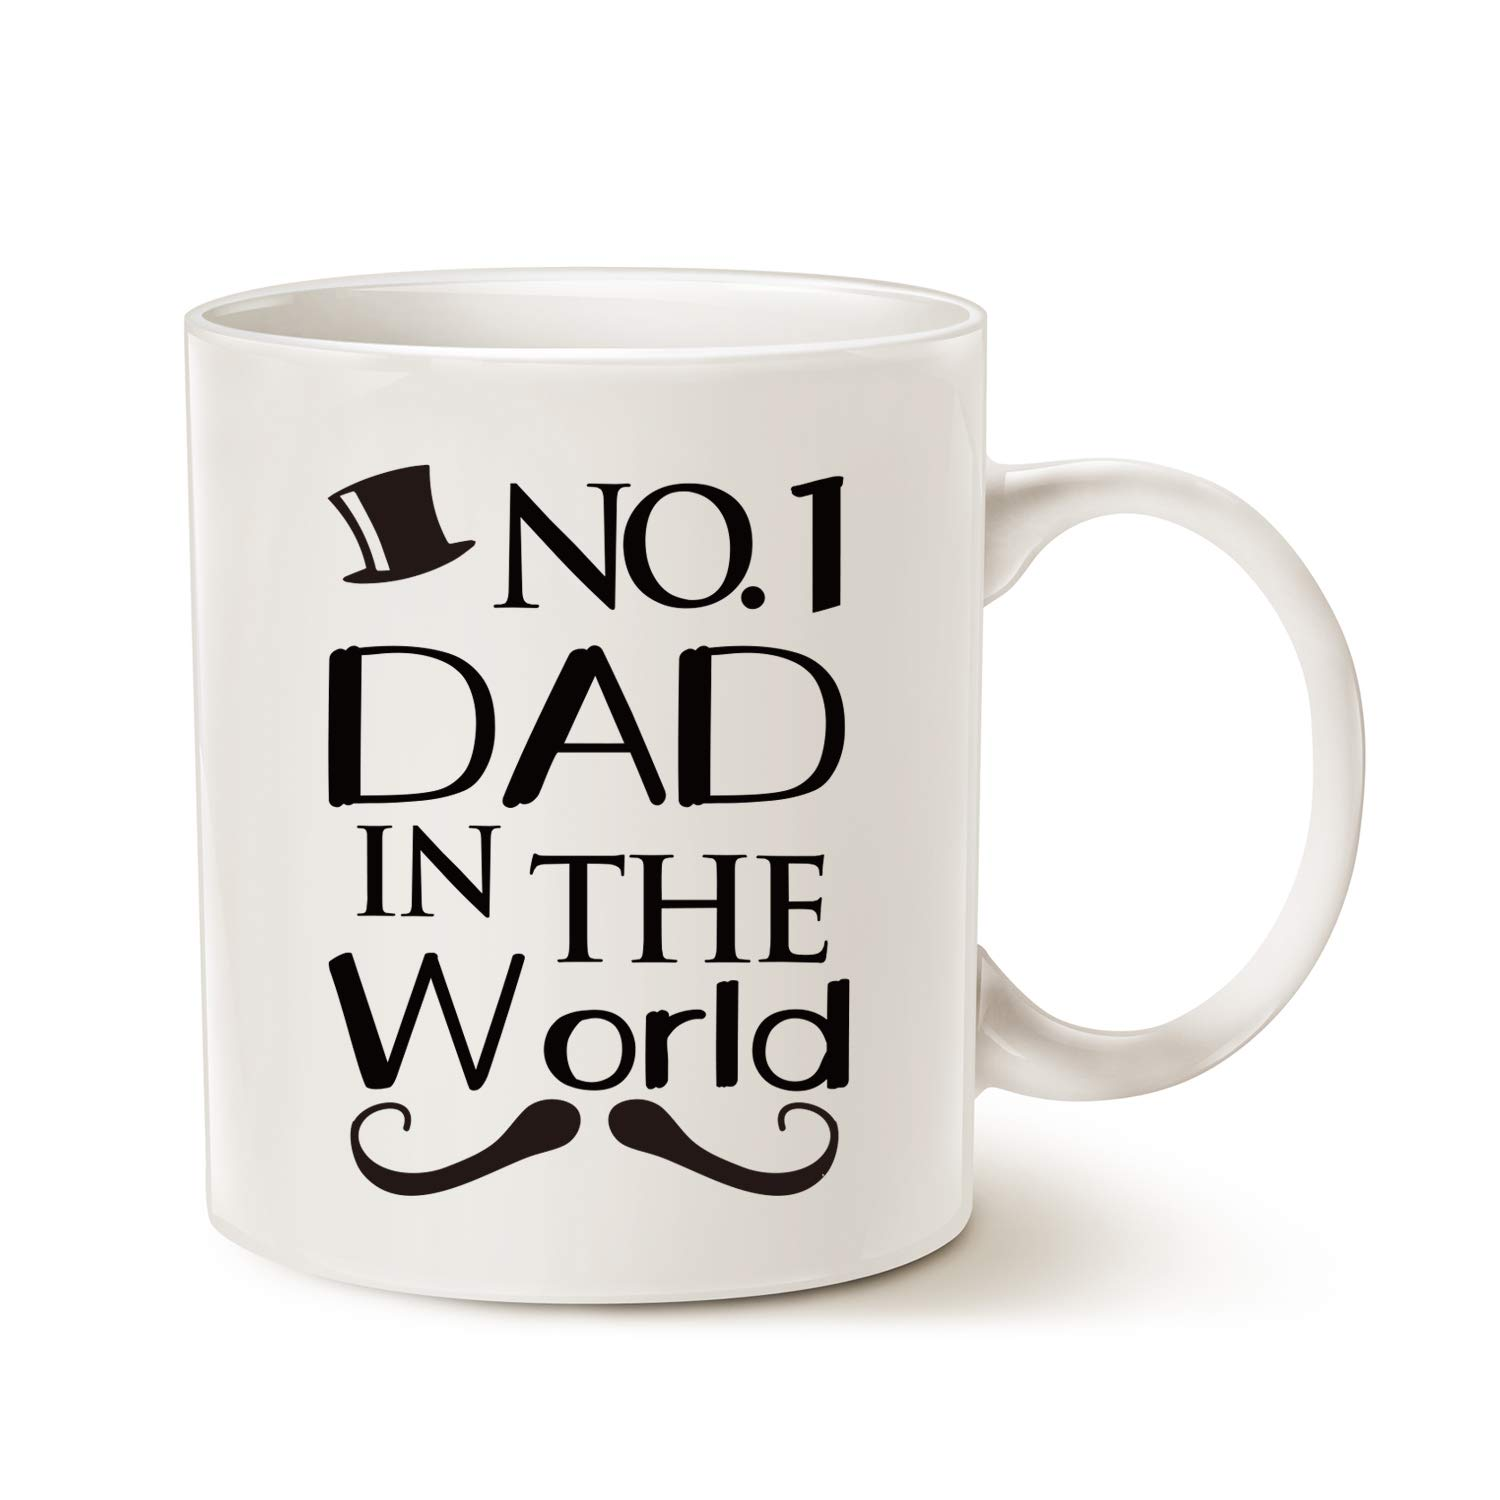 This Might Be Wine Funny Mustache Dad Coffee Mug No 1 Dad In The World Best Birthday Gifts For Father Ceramic Cup White 11 Oz Buy Online In India At Desertcart